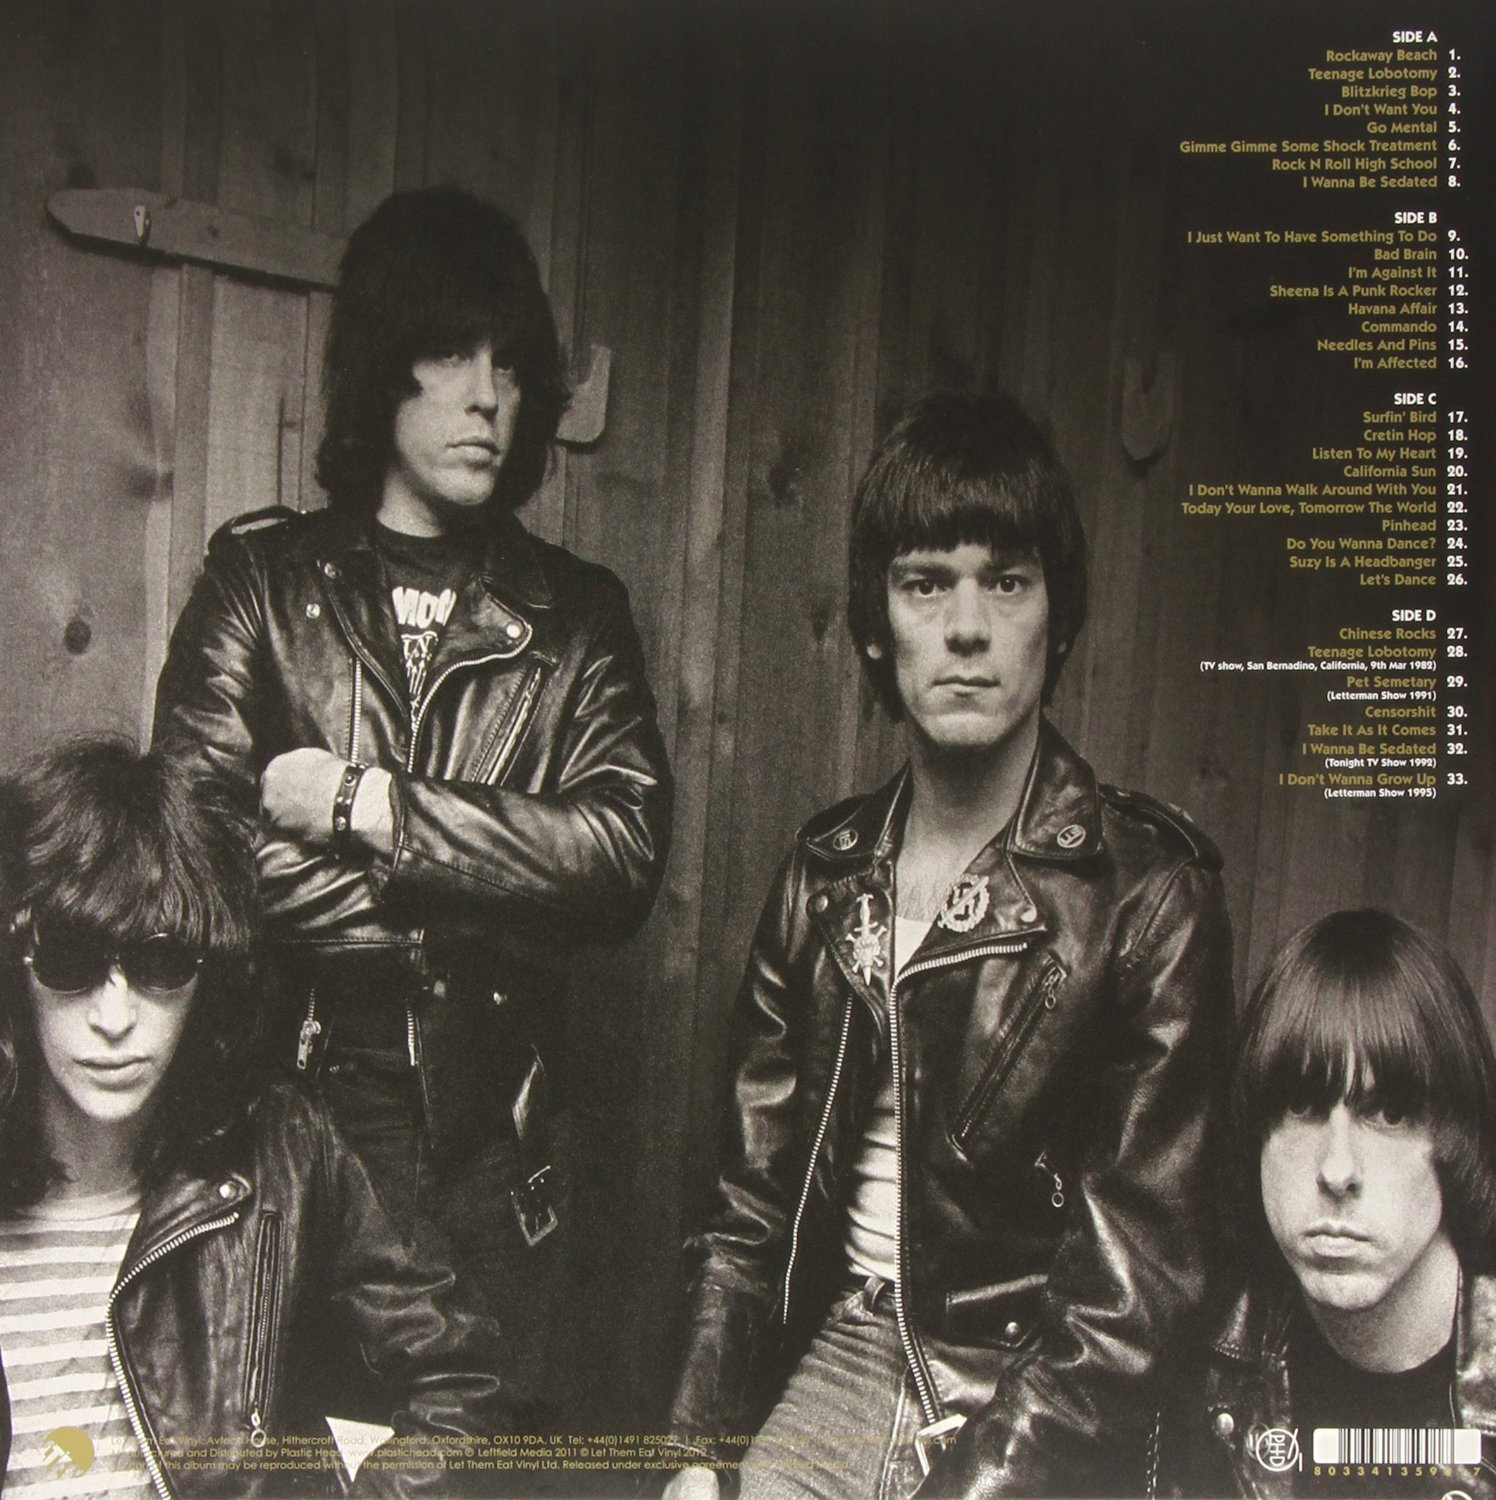 Disco de Vinil Ramones The Cretin Hop: Live Broadcast From The Second Chance Saloon February 1979